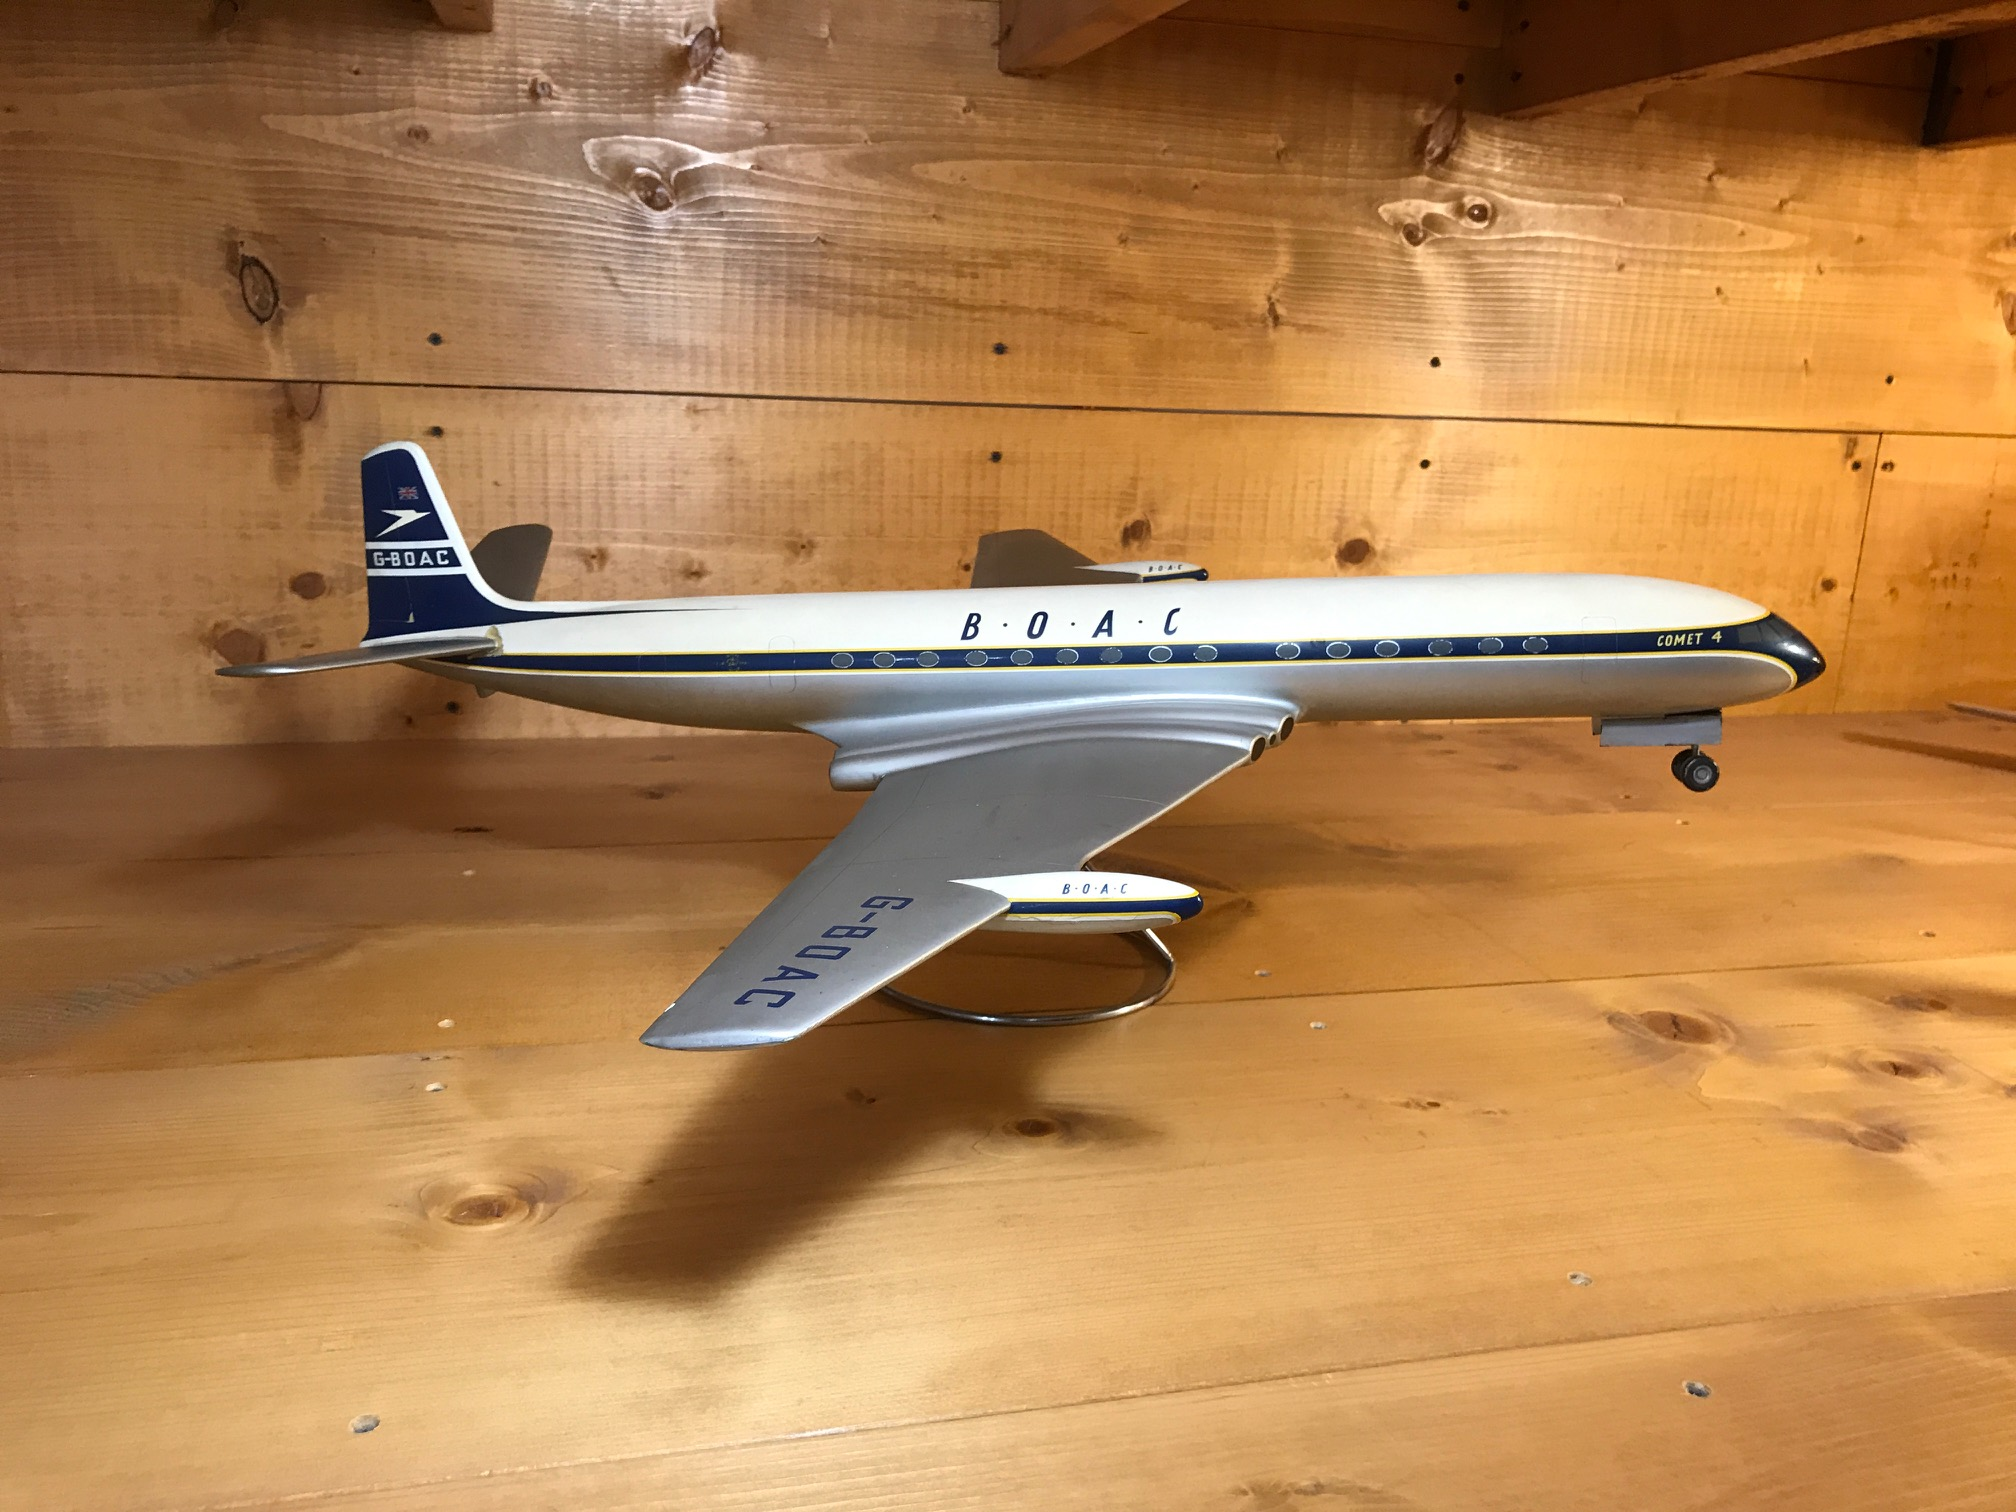 Airline Issue Models of Early Jet Airliners - World Airline